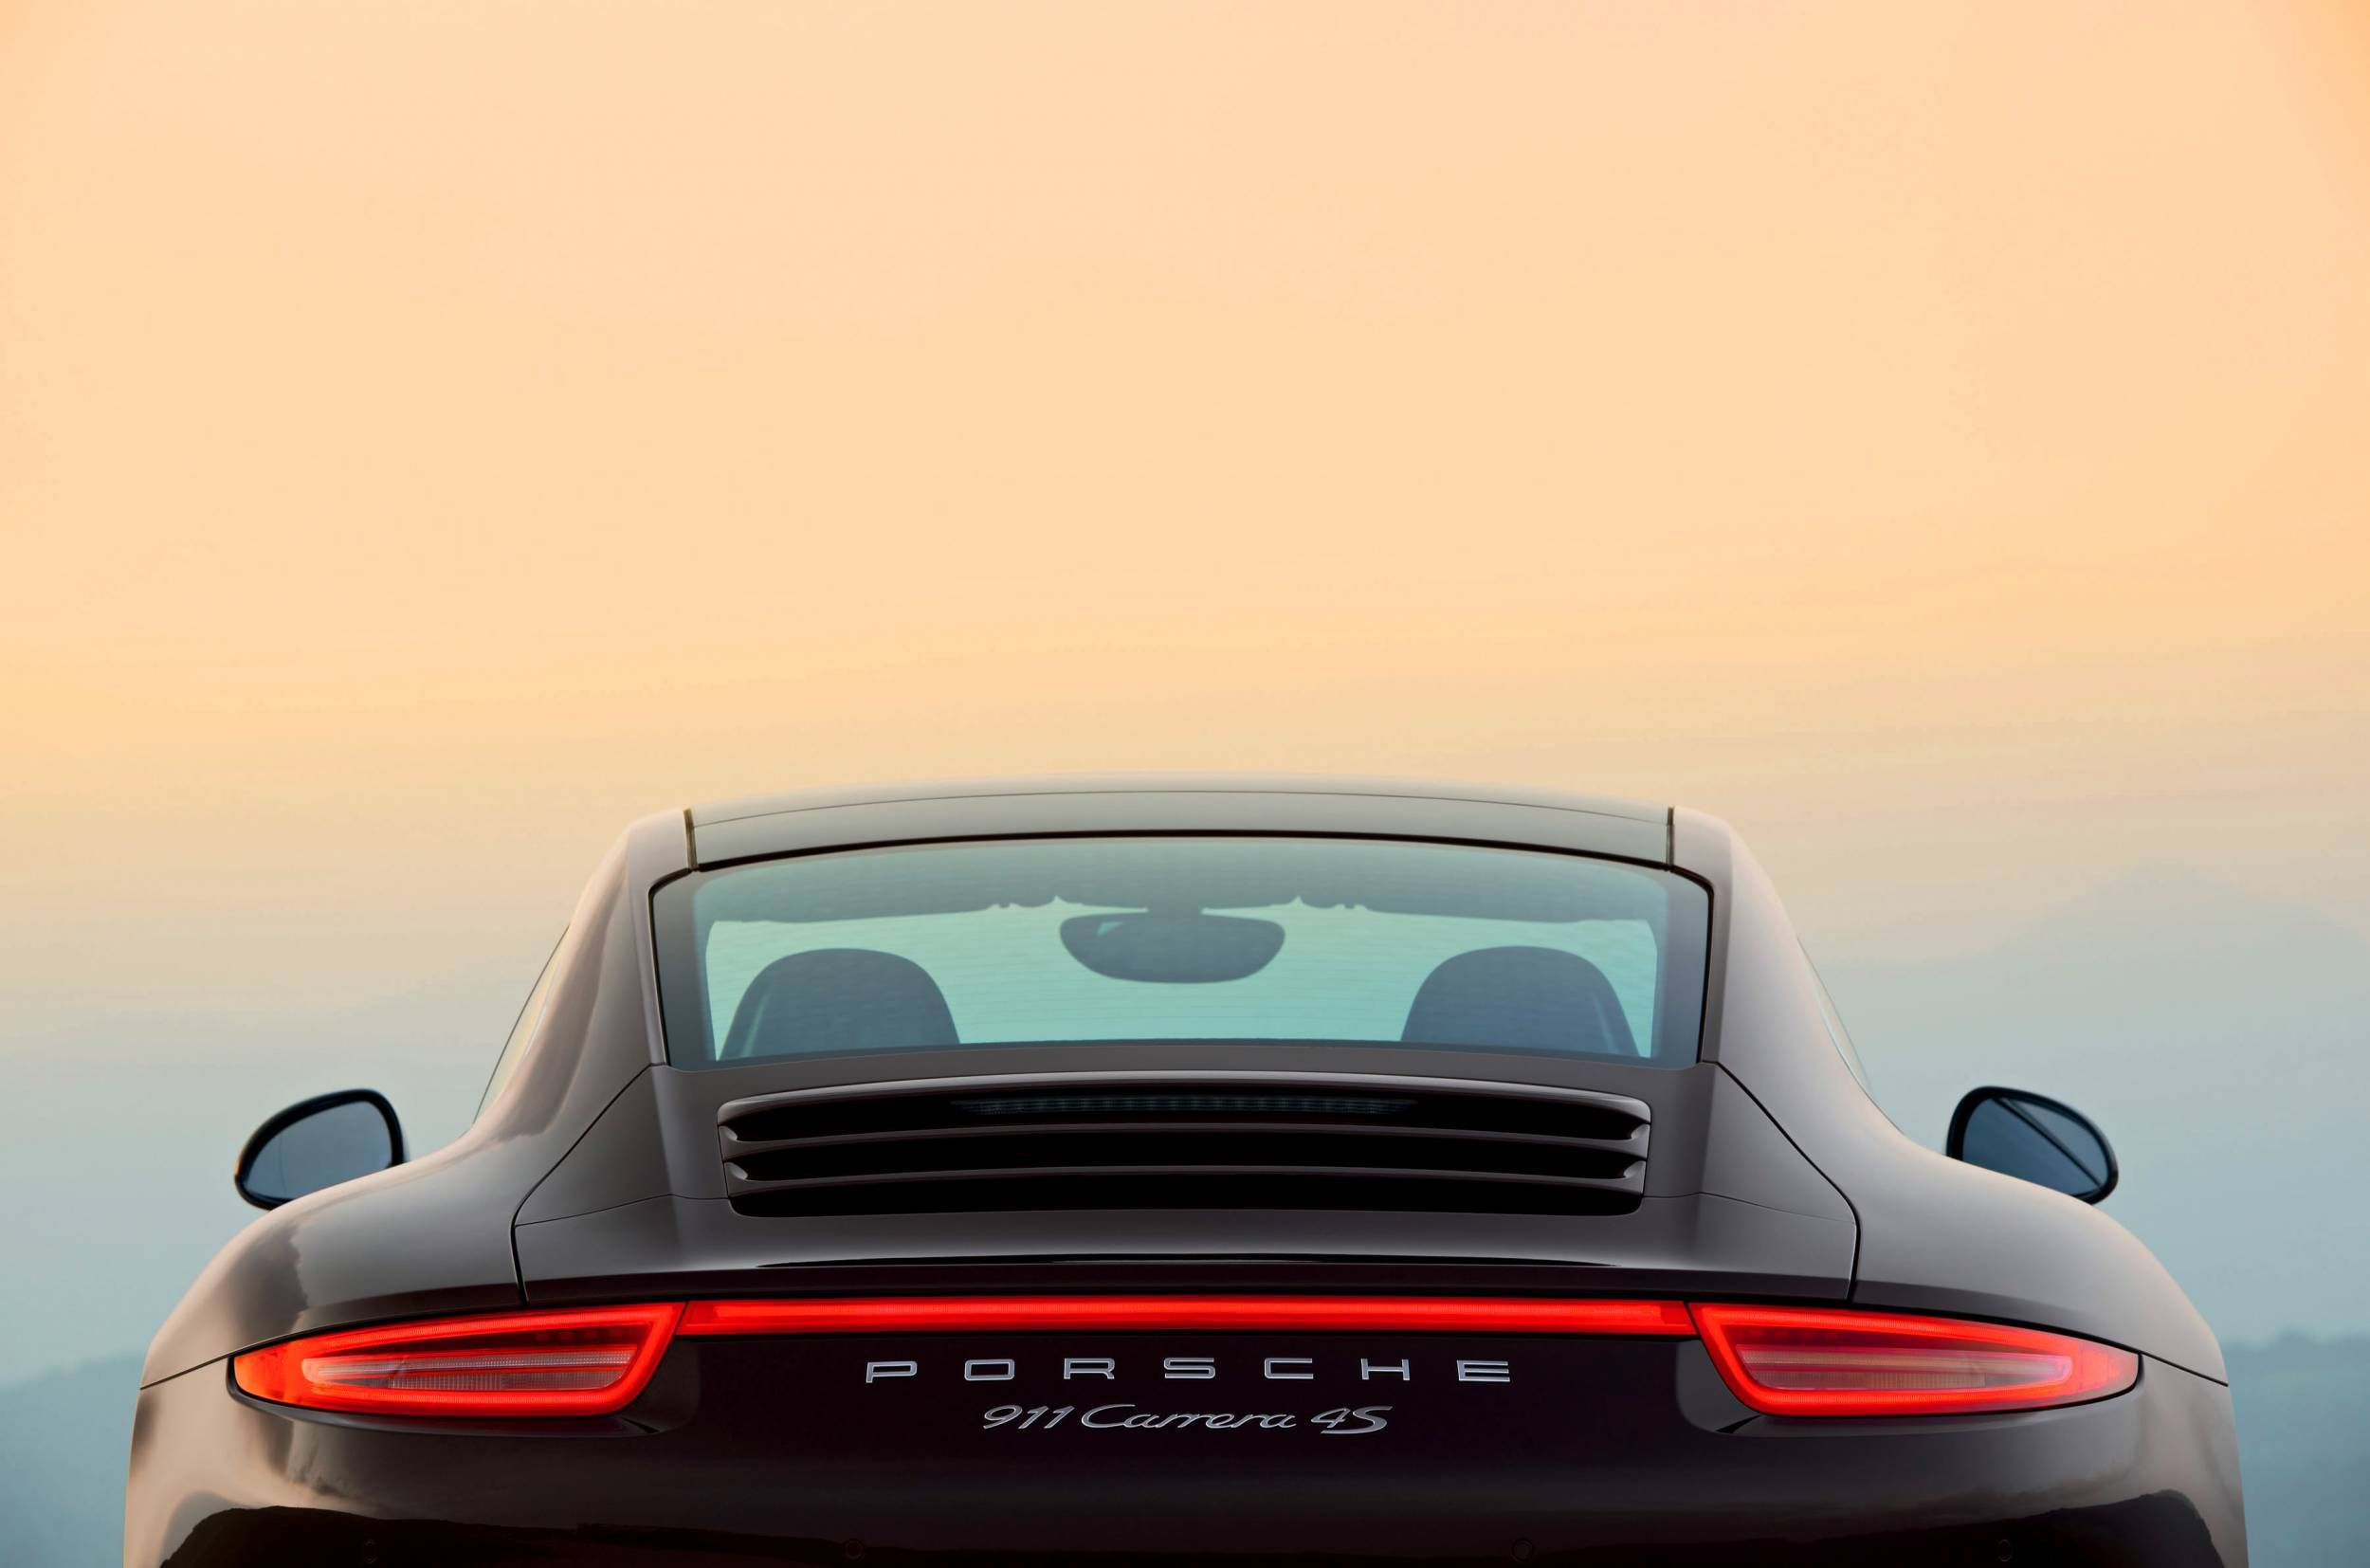 porsche car image hd